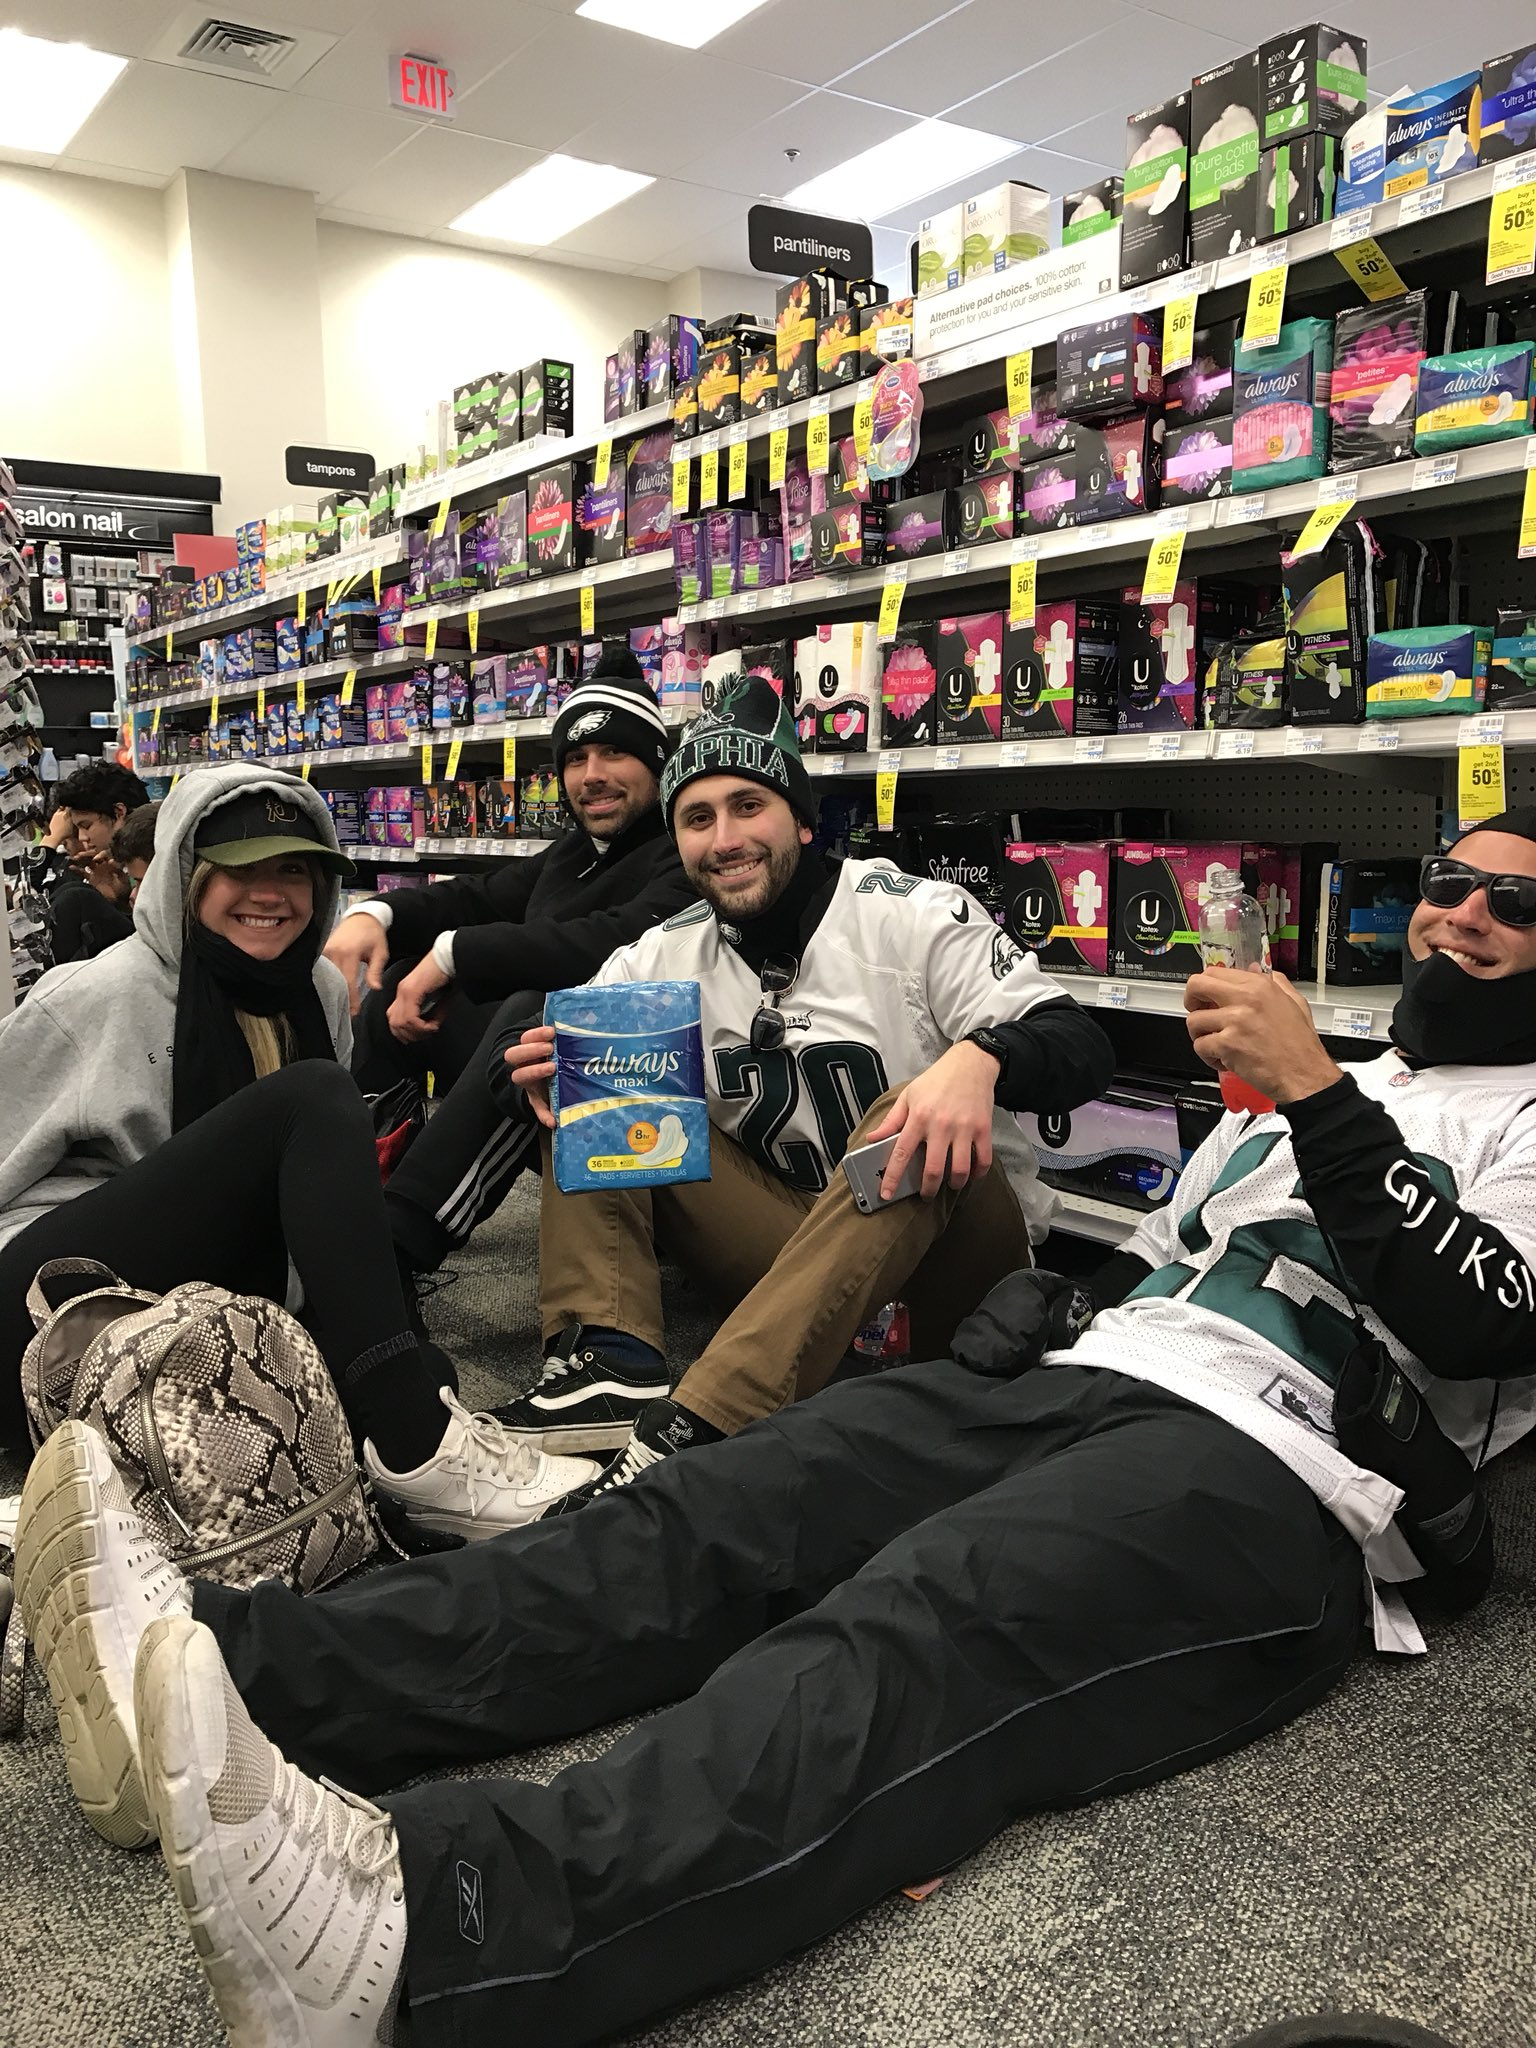 #Eagles parade #CVS #keeping warm https://t.co/v77zTPaAWa